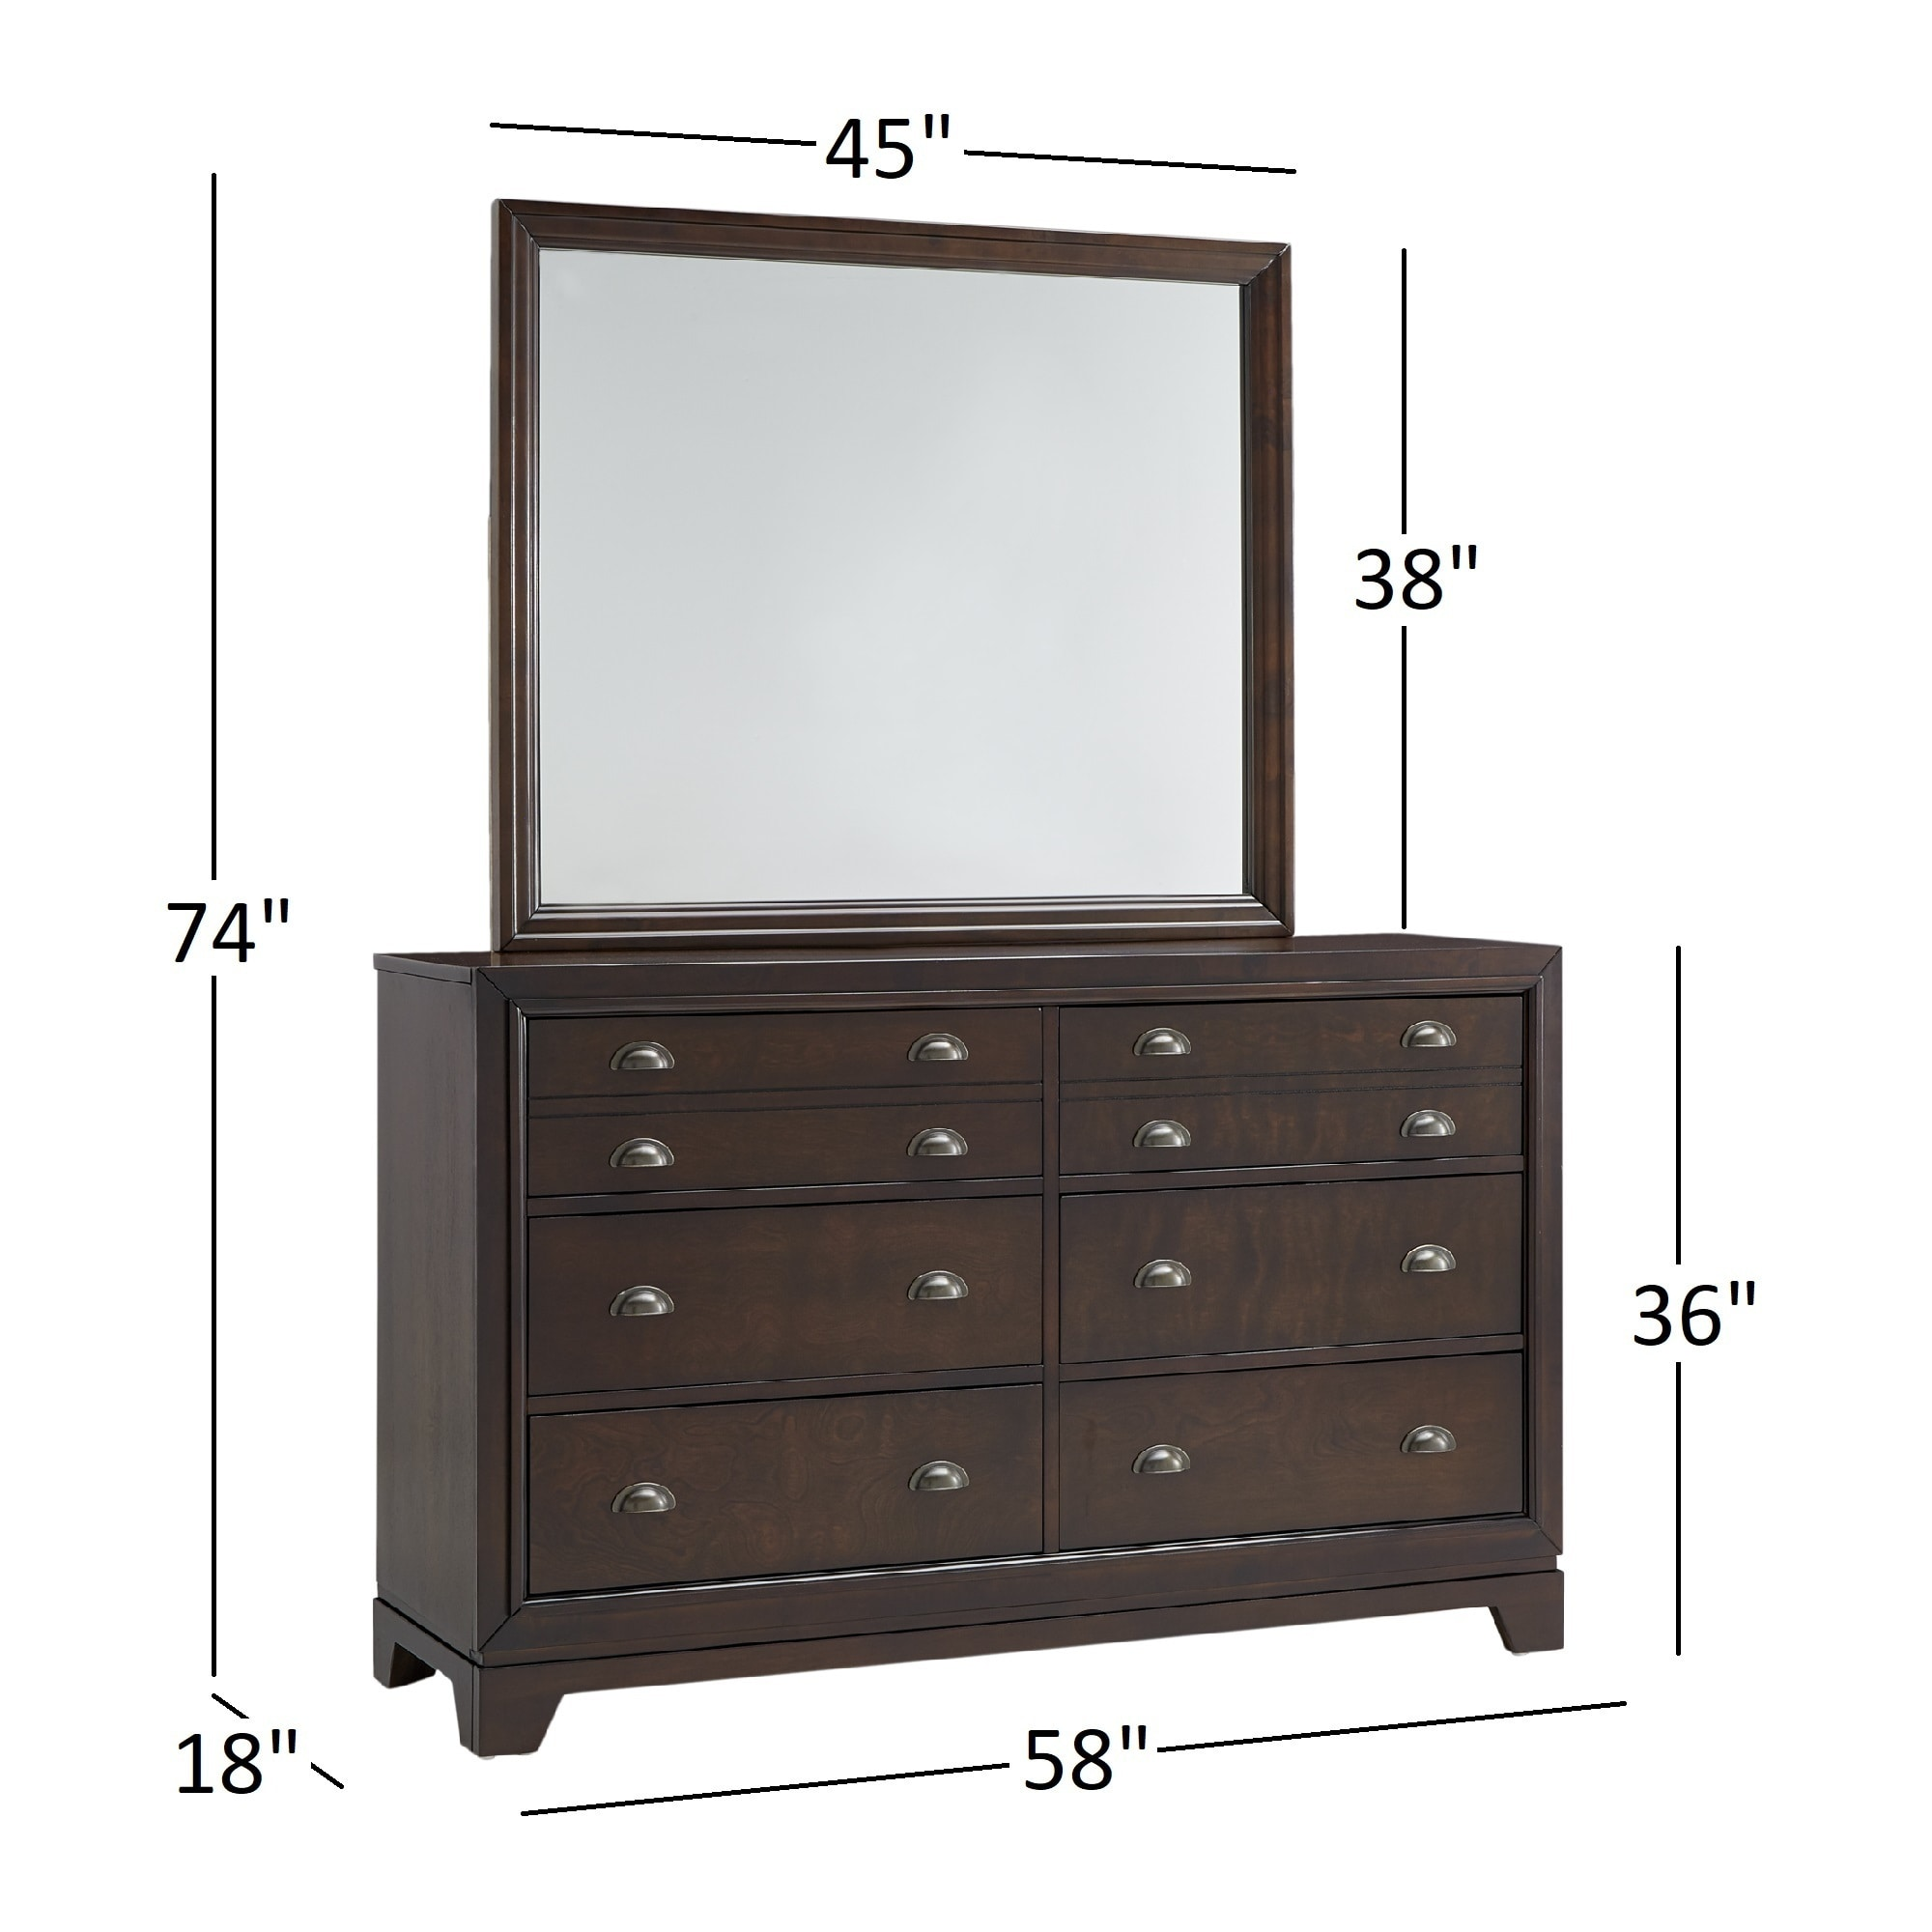 Oliver Dark Walnut 6-Drawer Wood Dresser and Mirror by iNSPIRE Q Classic -  Free Shipping Today - Overstock.com - 24689815